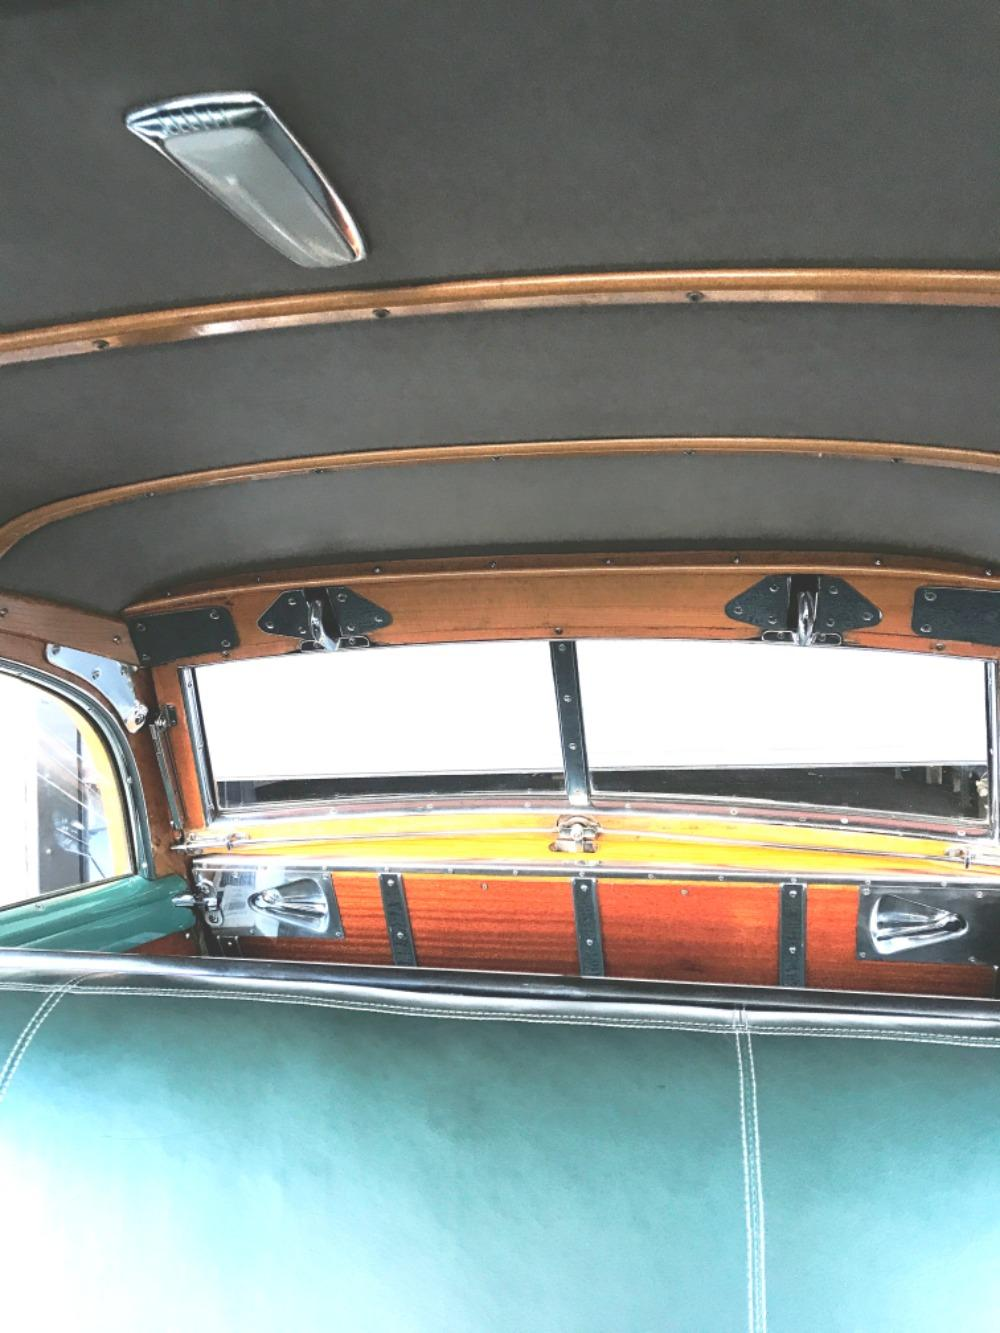 1949 Buick Series 50 -RARE WOODY WAGON- ONLY 653 BUILT-Super Estate Wagon Stock # 849CAMK for sale near Mundelein, IL | IL Buick Dealer #70